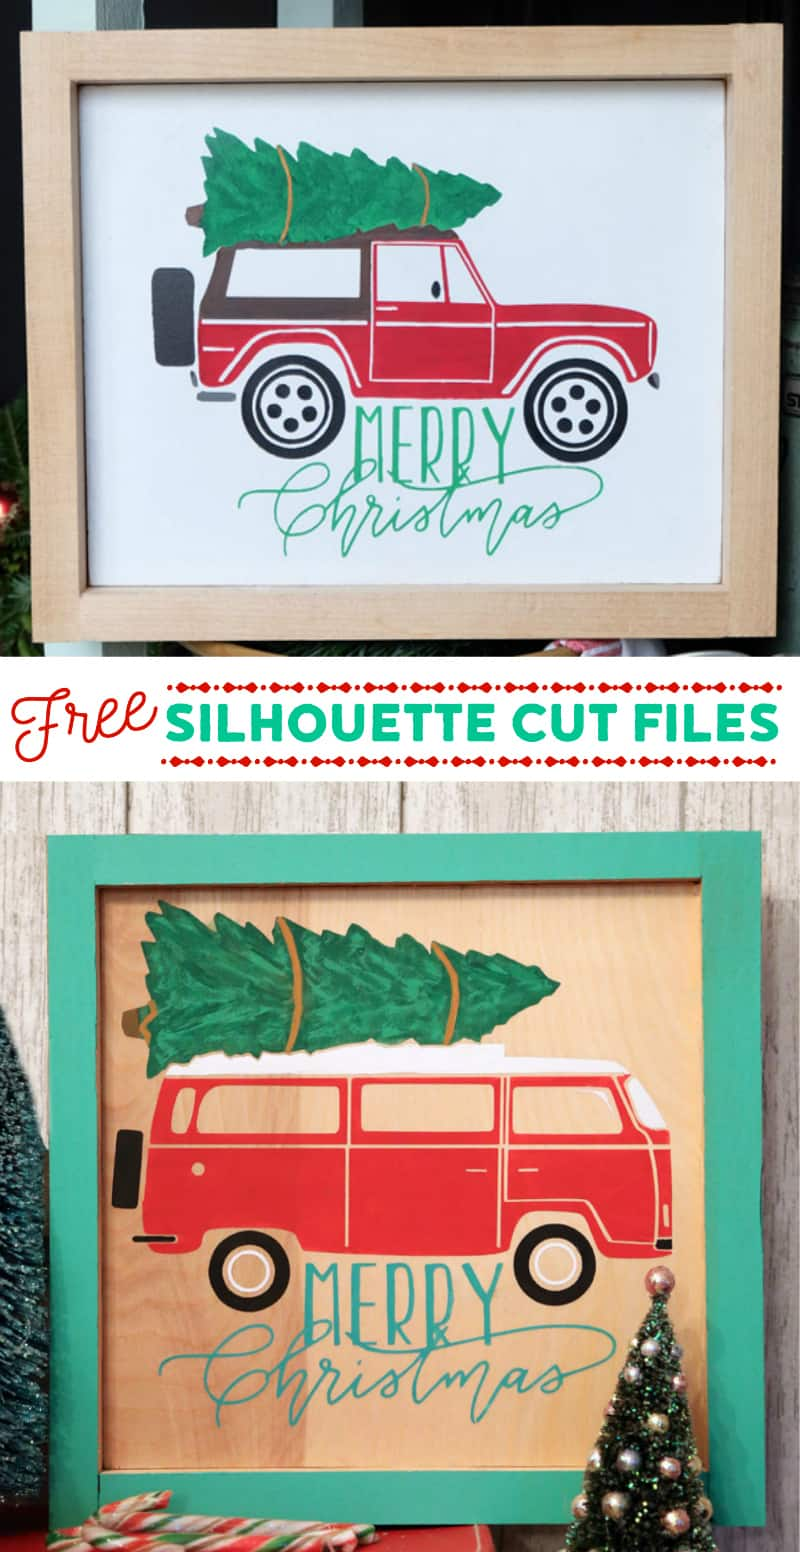 Free Christmas Bronco and Camper Van Silhouette Cut Files from fynesdesigns.com